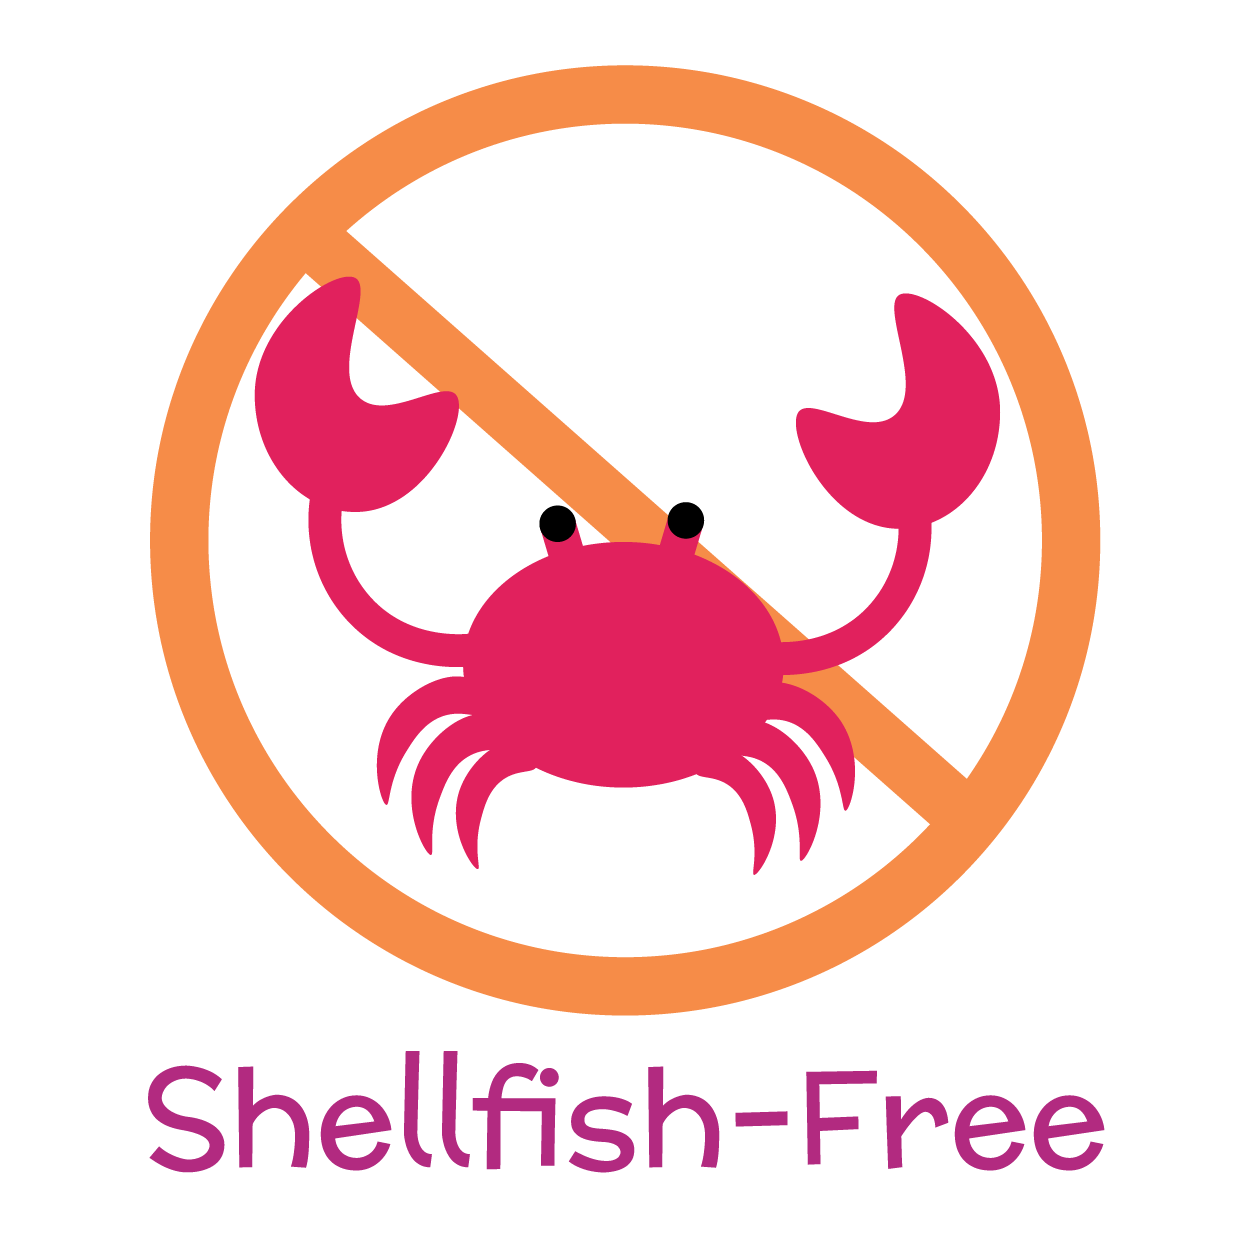 shellfish-free-icon-nomster-chef